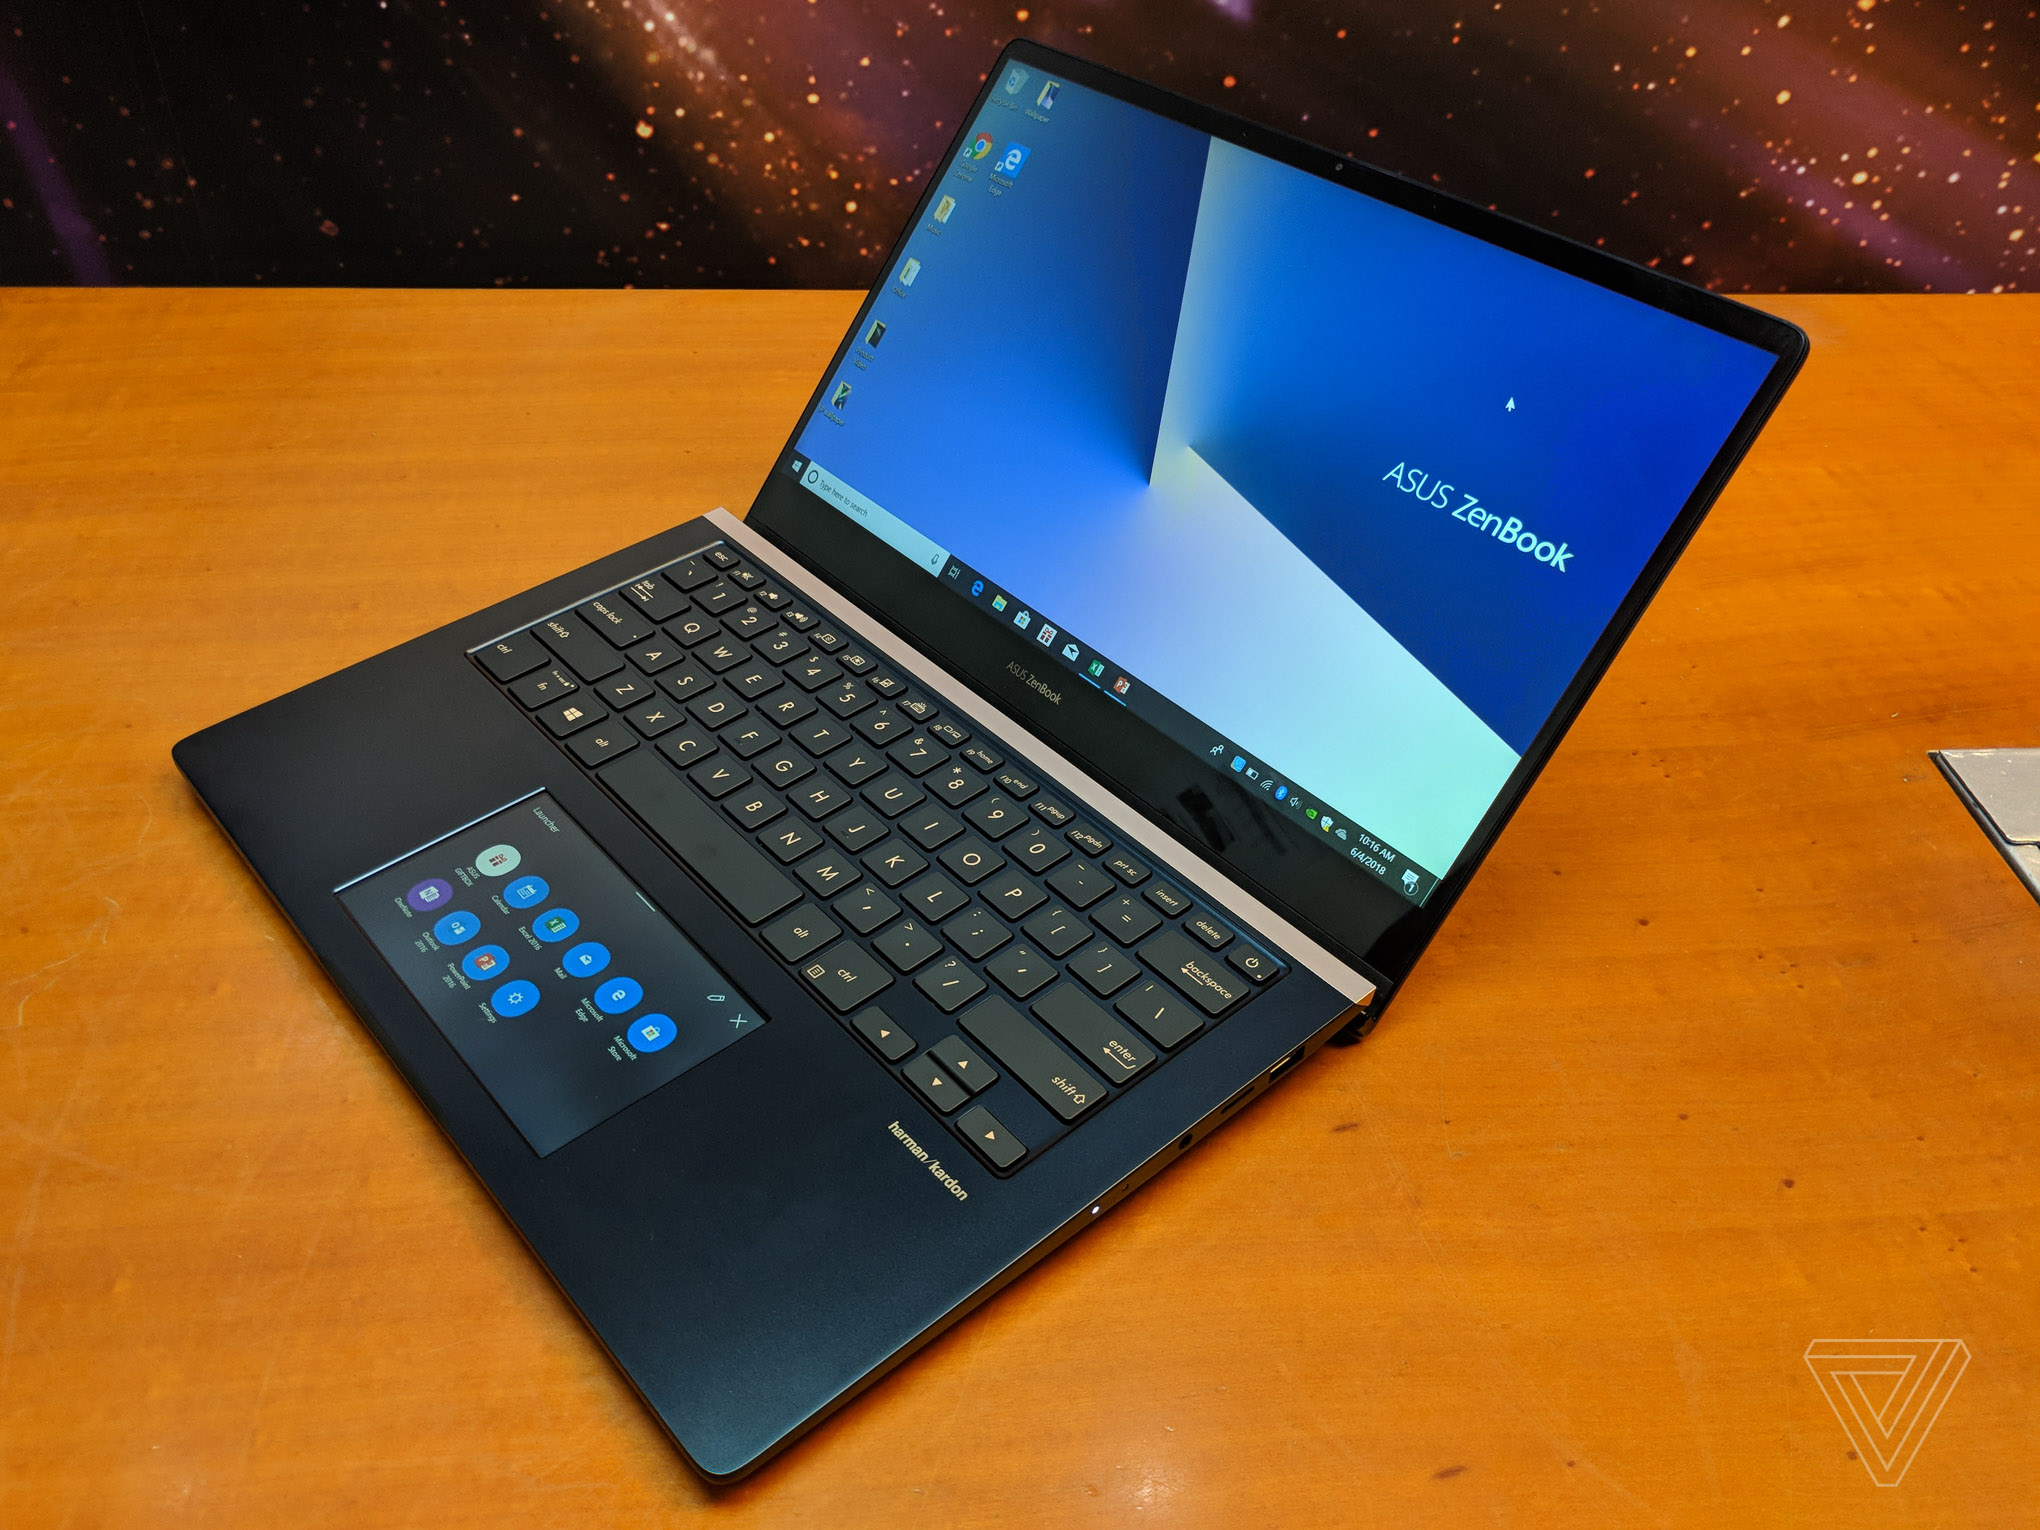 ASUS ZENBOOK TOUCH UX31A SMART GESTURE DRIVER DOWNLOAD